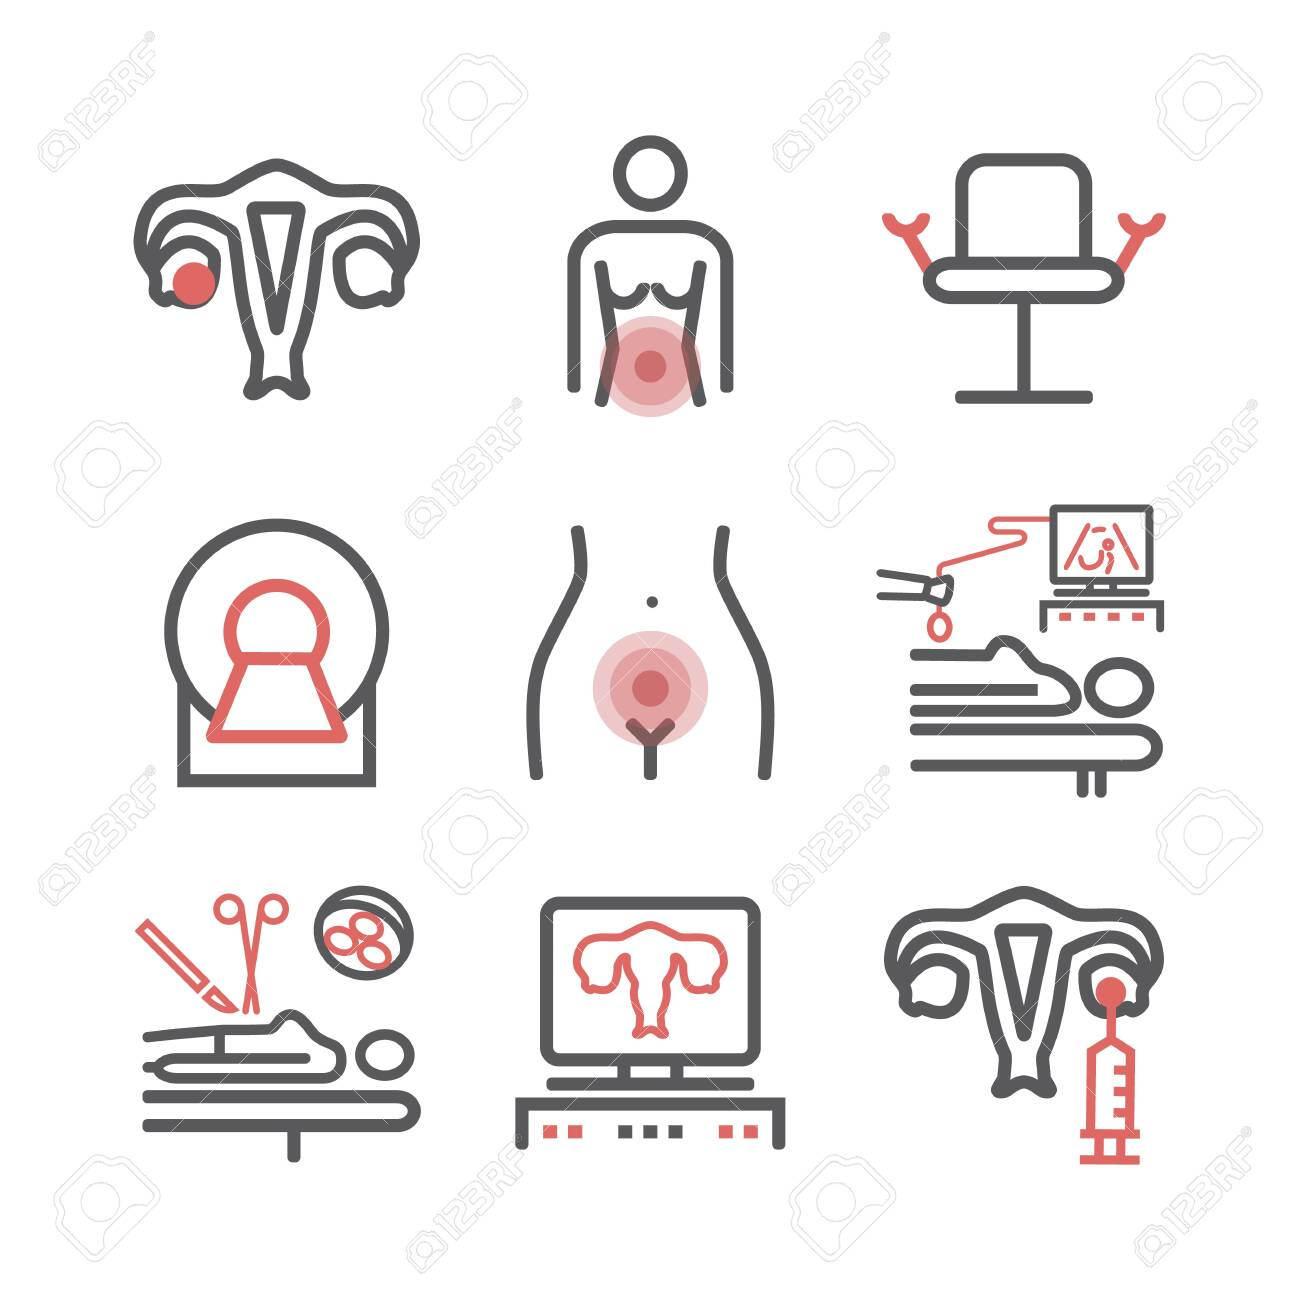 Ovarian Cancer Symptoms Causes Treatment Line Icons Set Royalty Free Cliparts Vectors And Stock Illustration Image 132032856